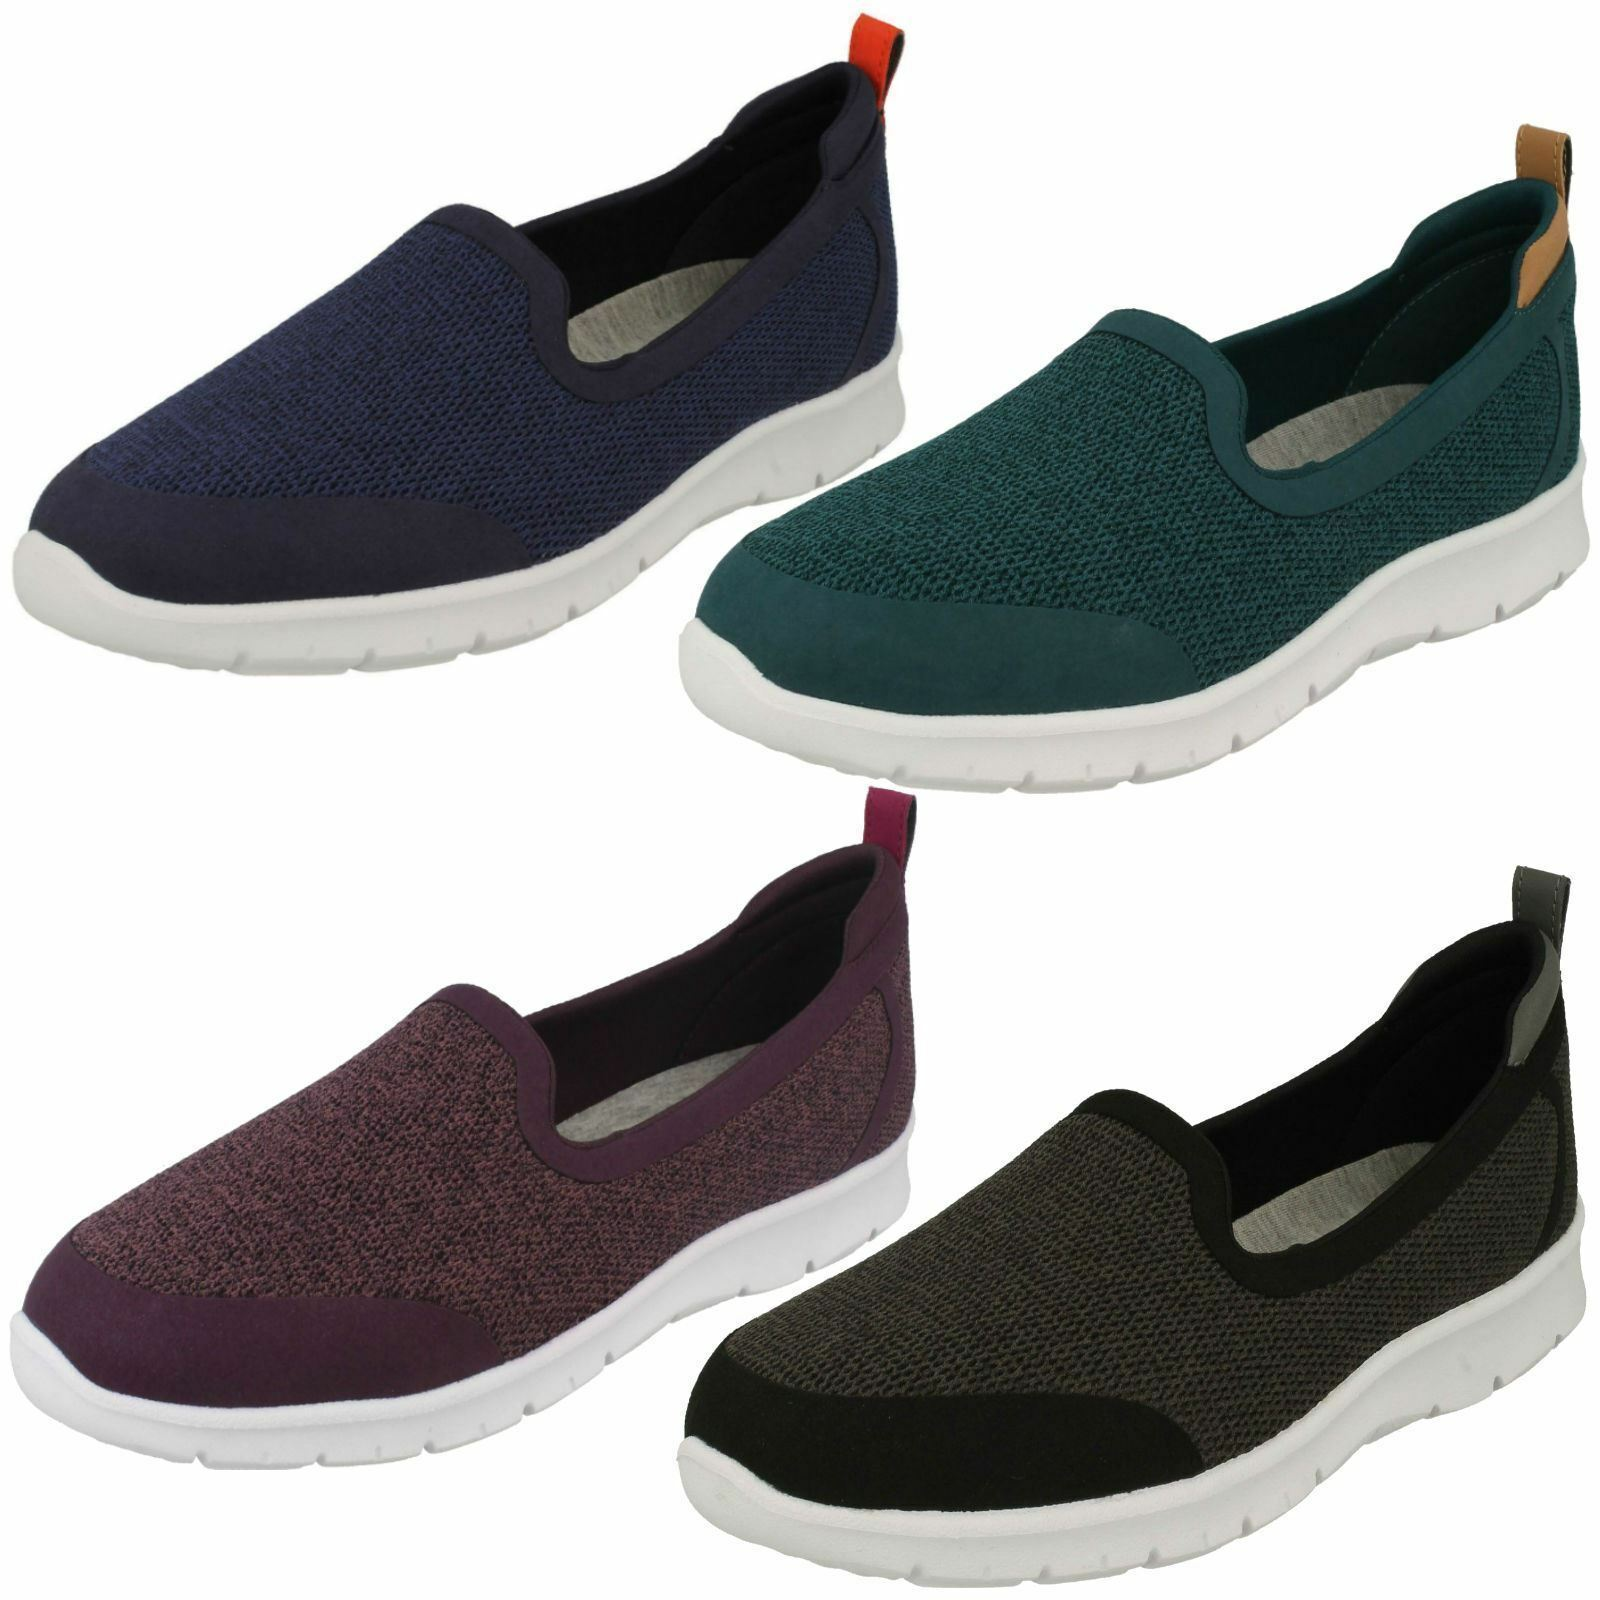 Donna Clarks Nuvola Steppers Step Slip-On Allena lo Scarpe Casual Slip-On Step 3a8eee